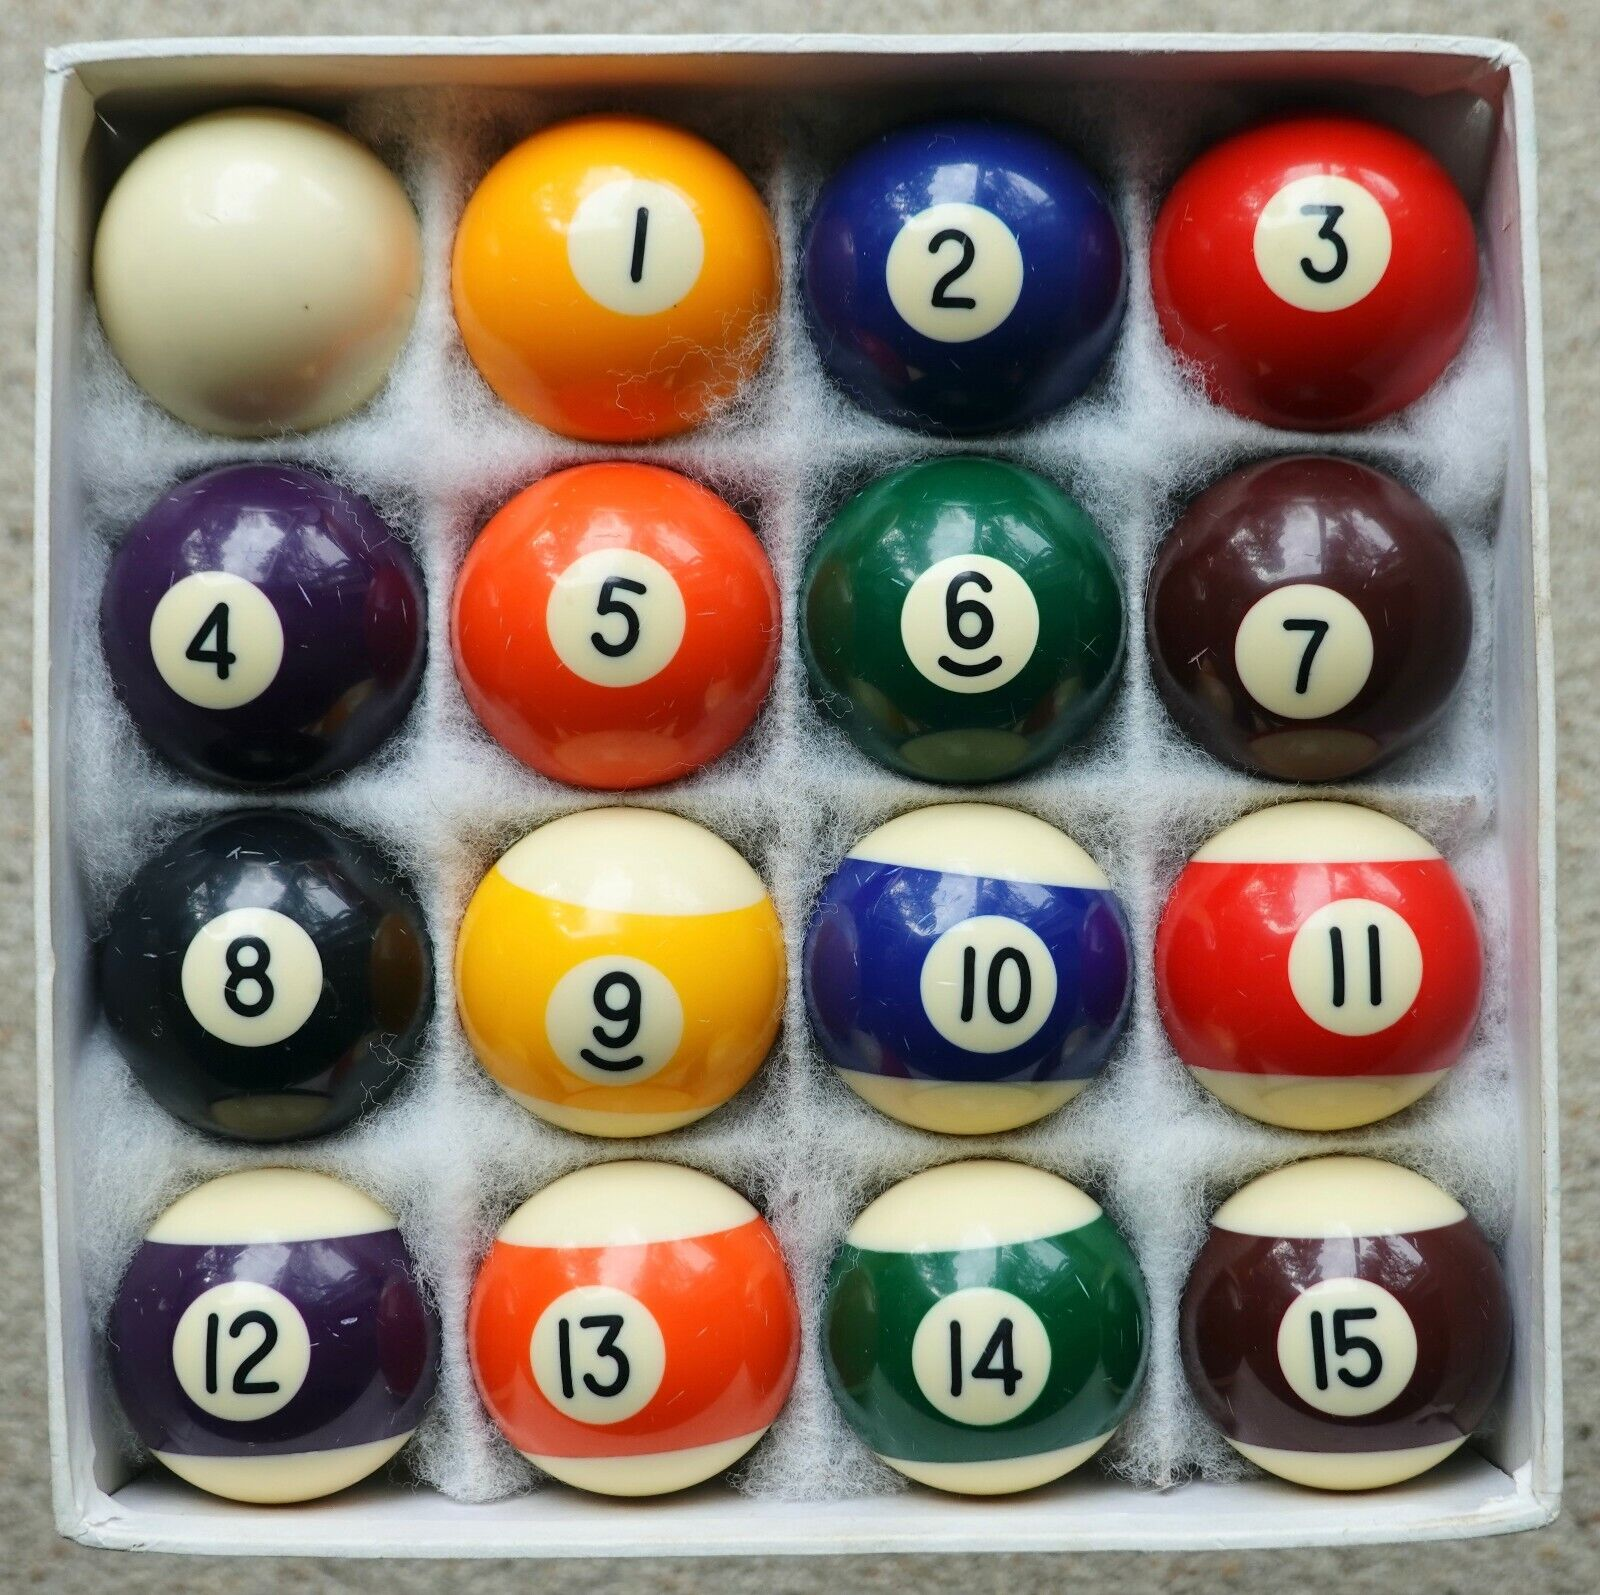 Set of pool balls - spots and stripes size 1 7/8 inch